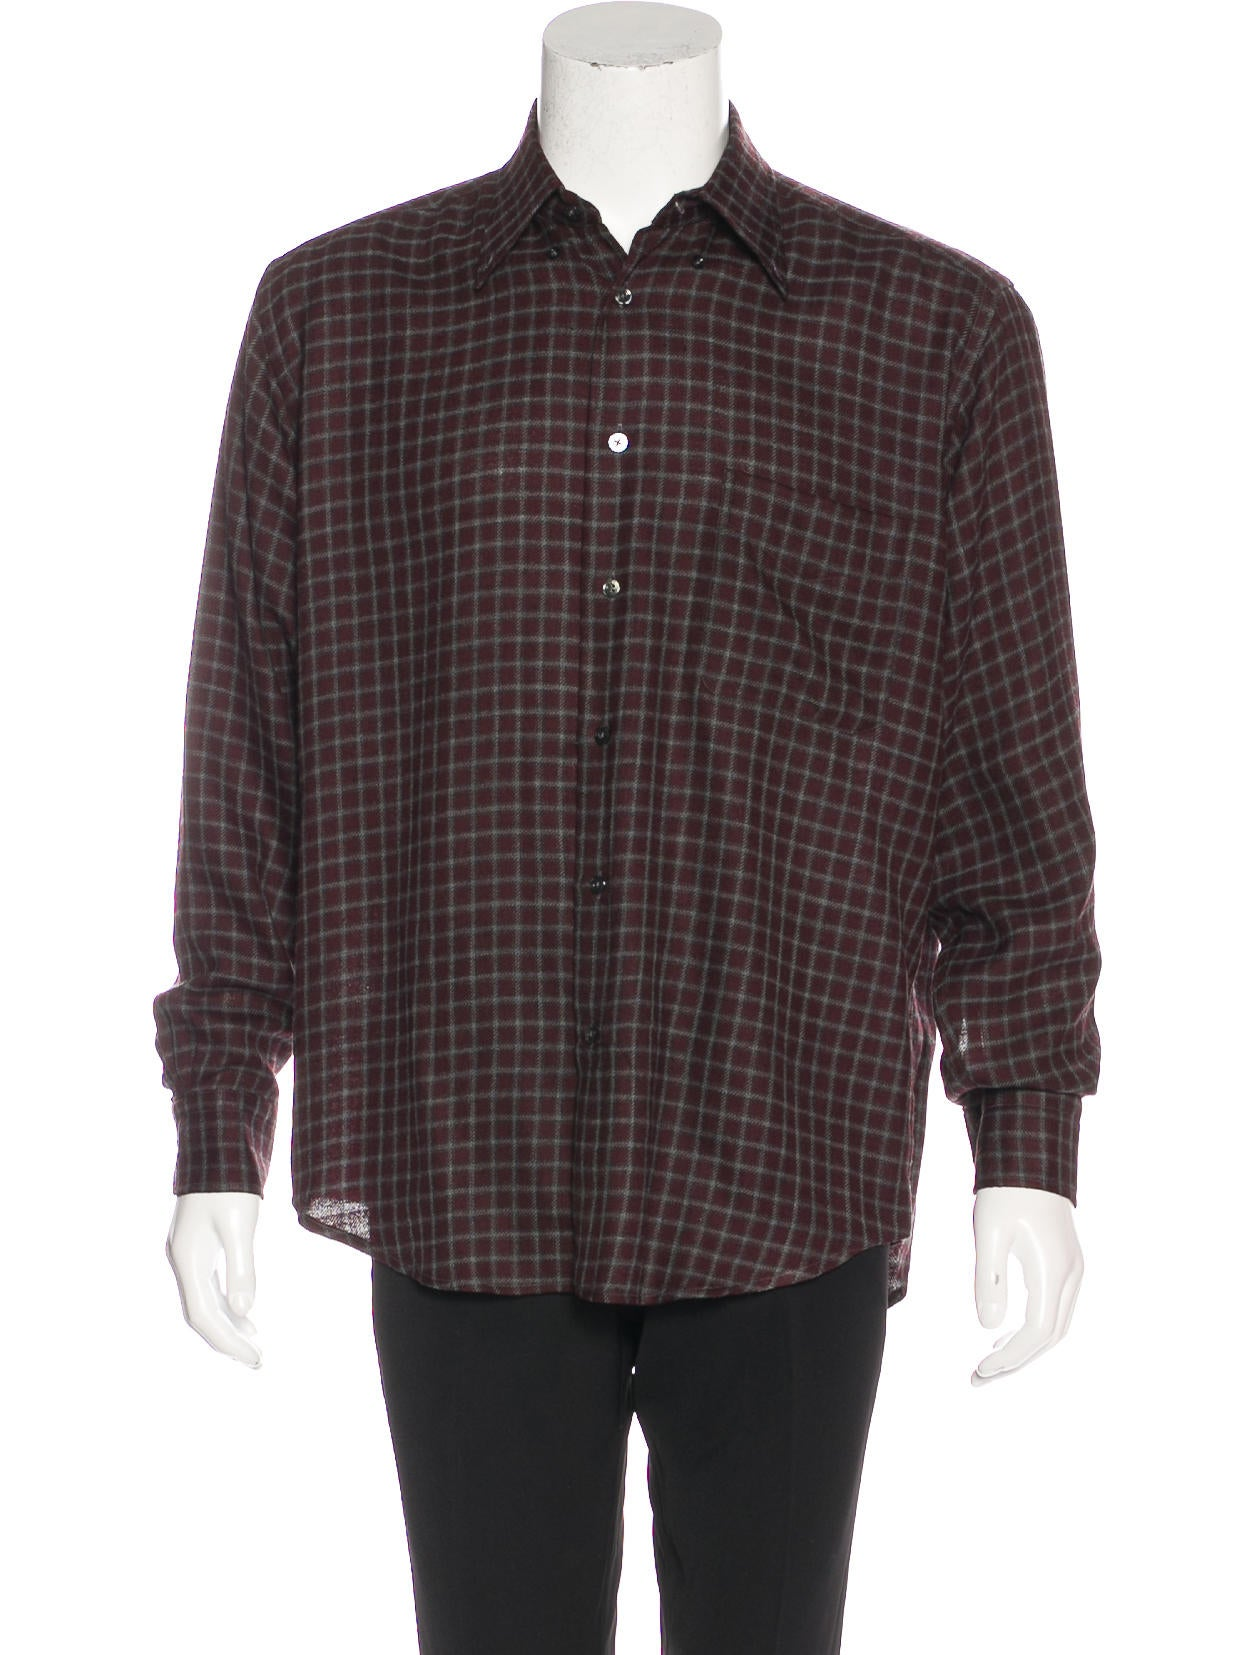 Herm S Wool Check Flannel Shirt Clothing Her109421